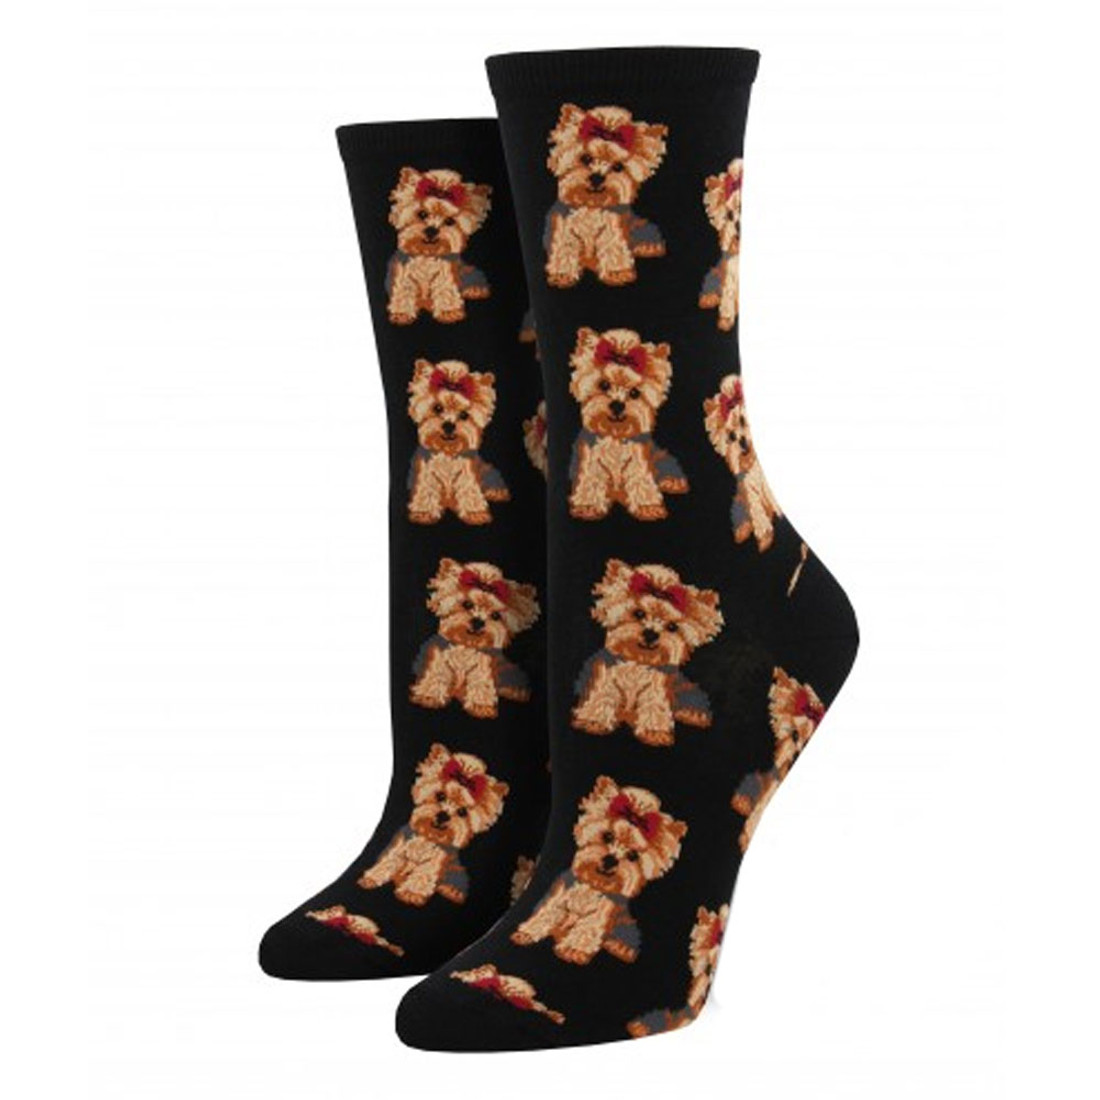 Yorkshire Terrier Puppy Dog Women's Crew Socks